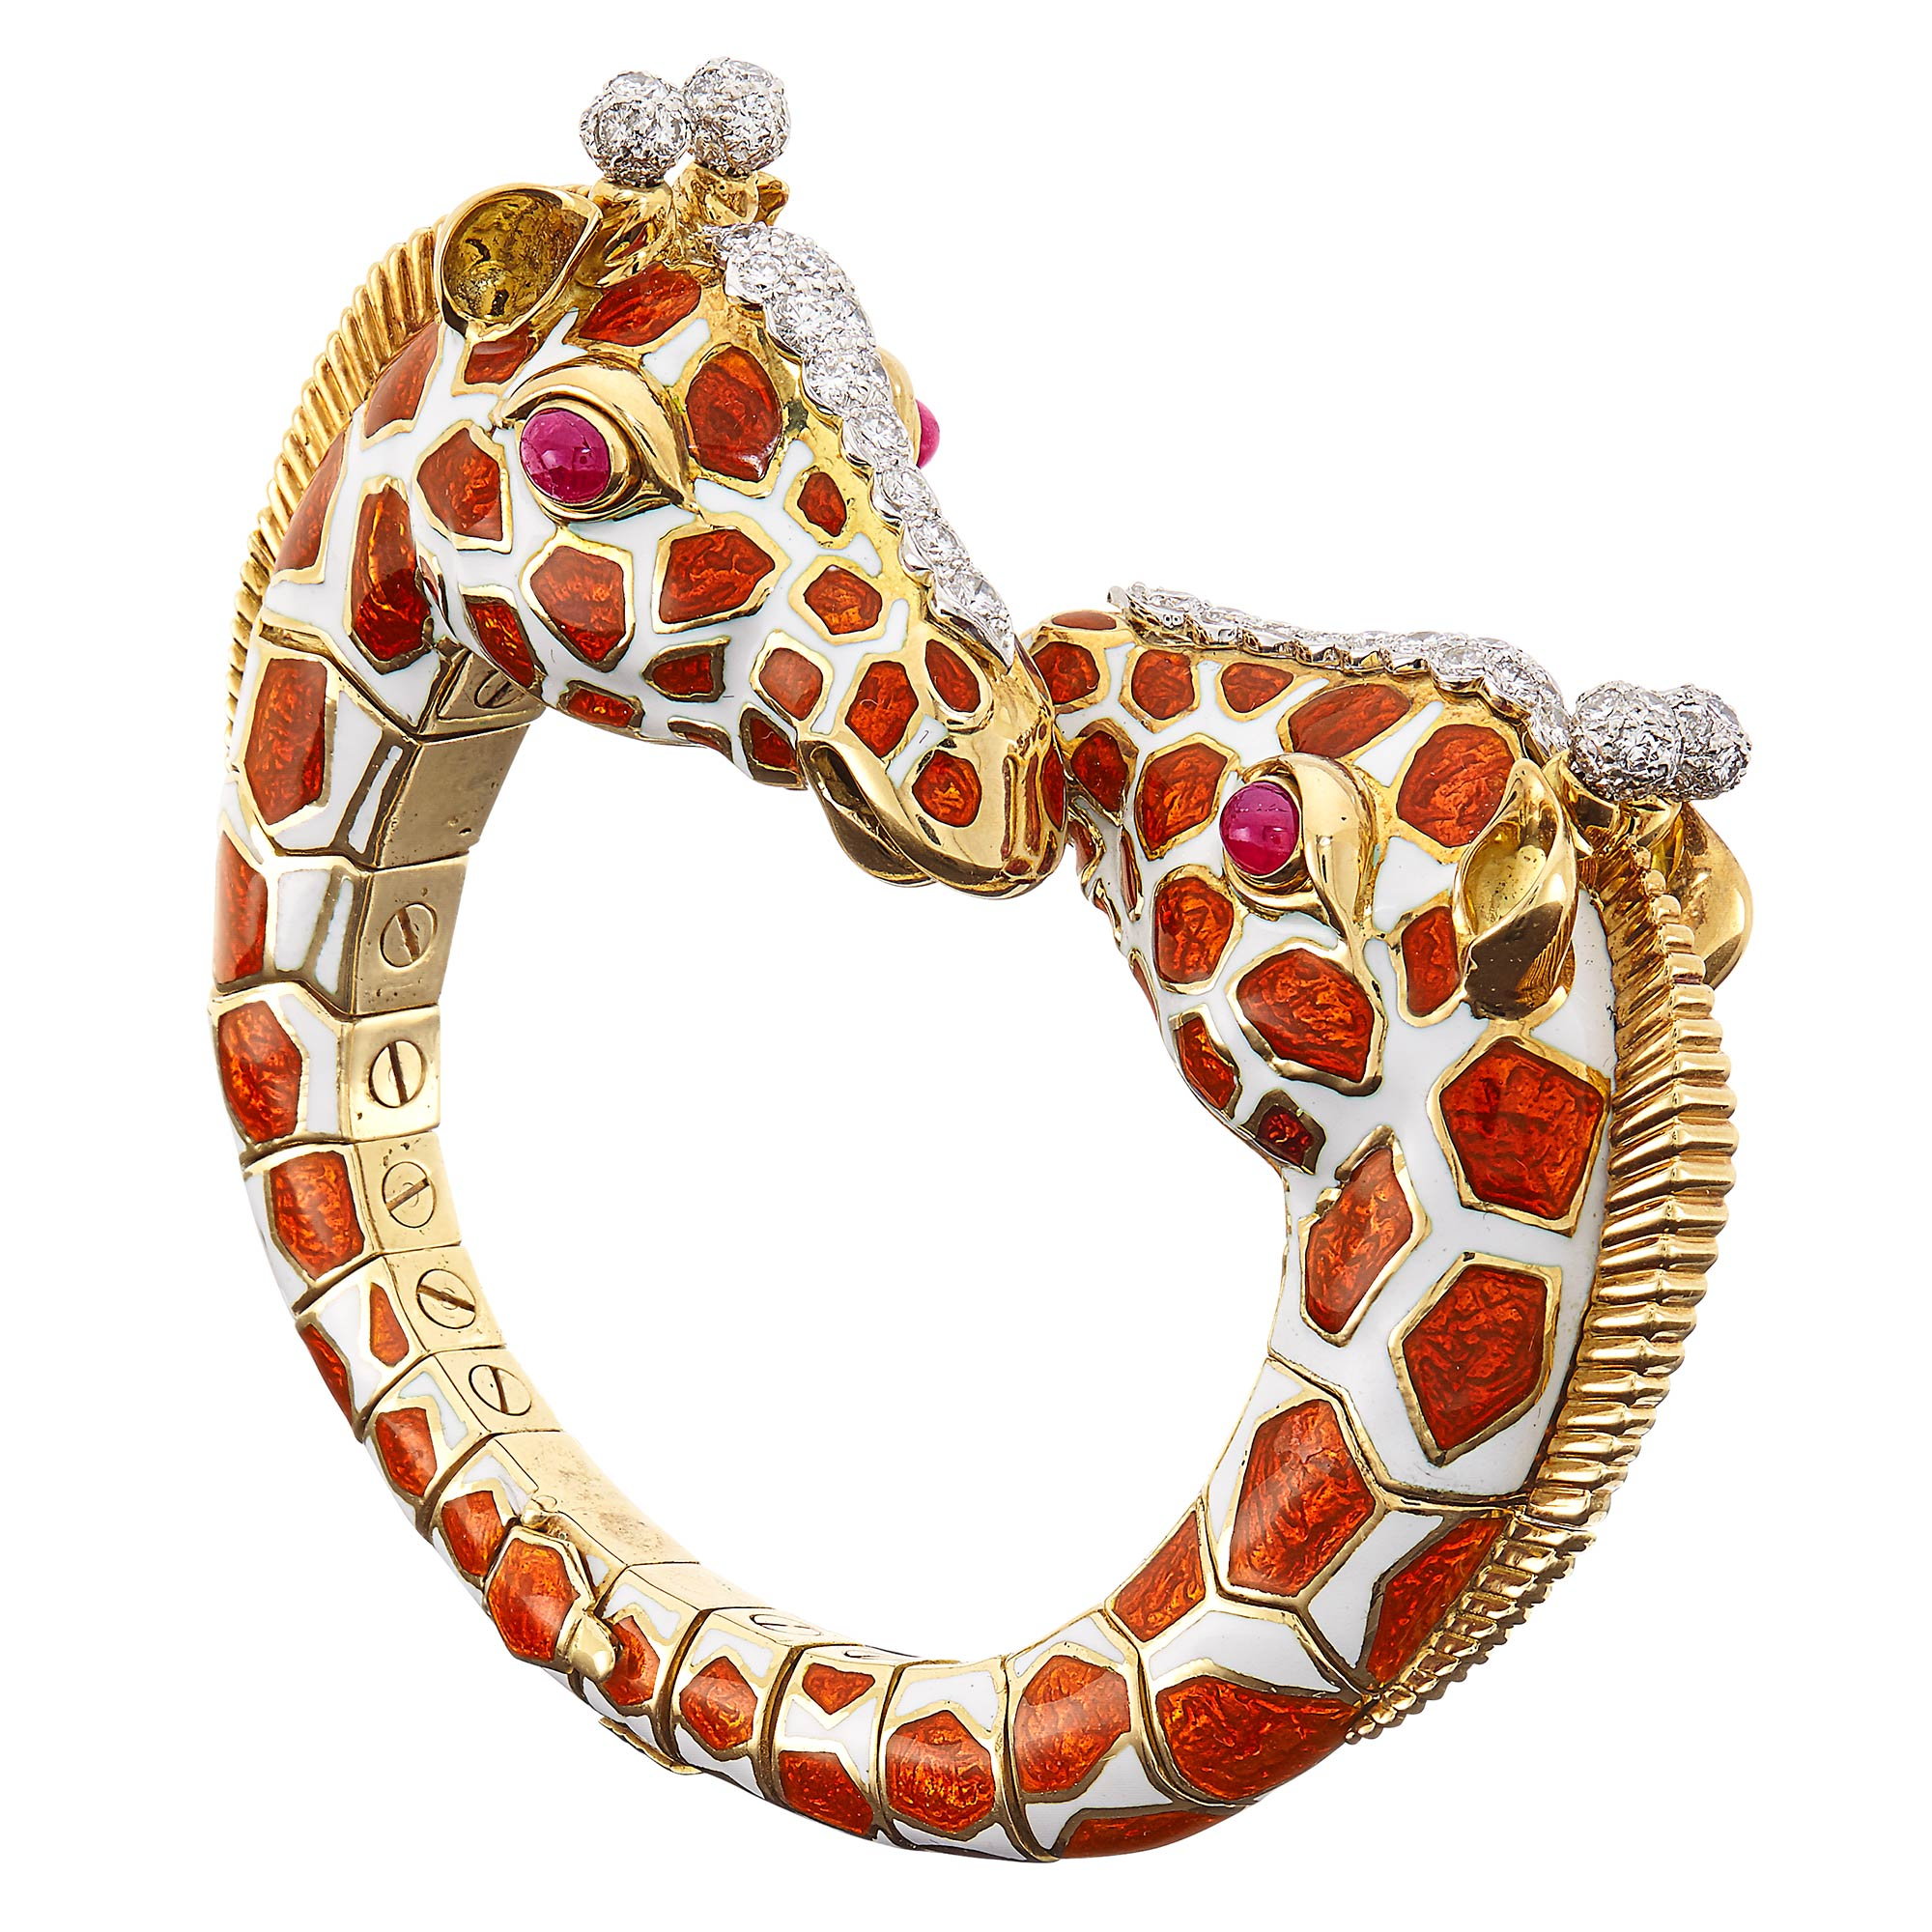 Lot image - Gold, Platinum, Enamel, Diamond and Cabochon Ruby Double Giraffe Bangle Bracelet, David Webb